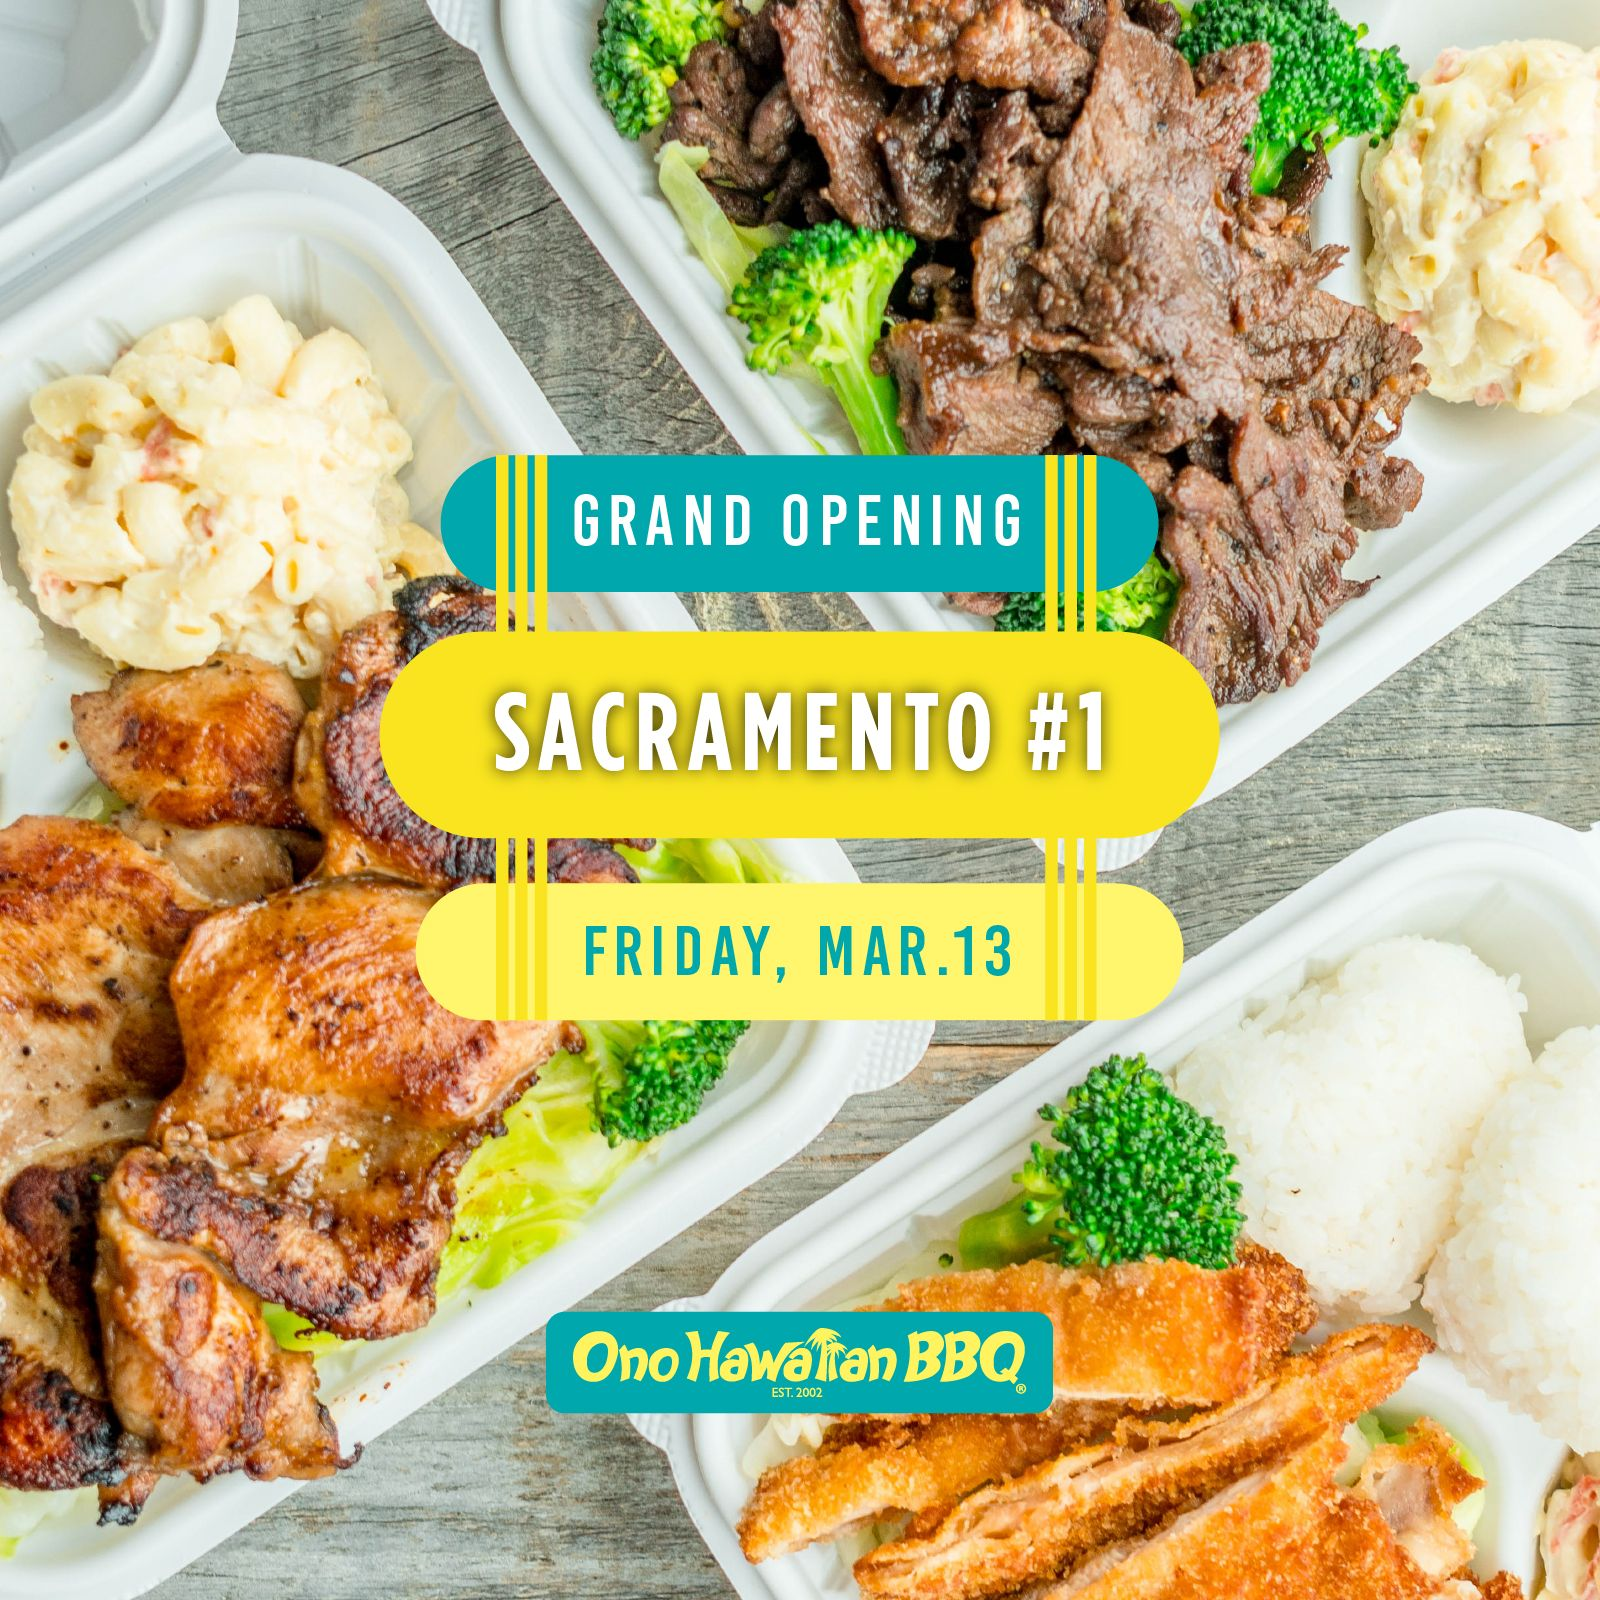 Ono Hawaiian BBQ Expands Across Sacramento With its Fourth Location